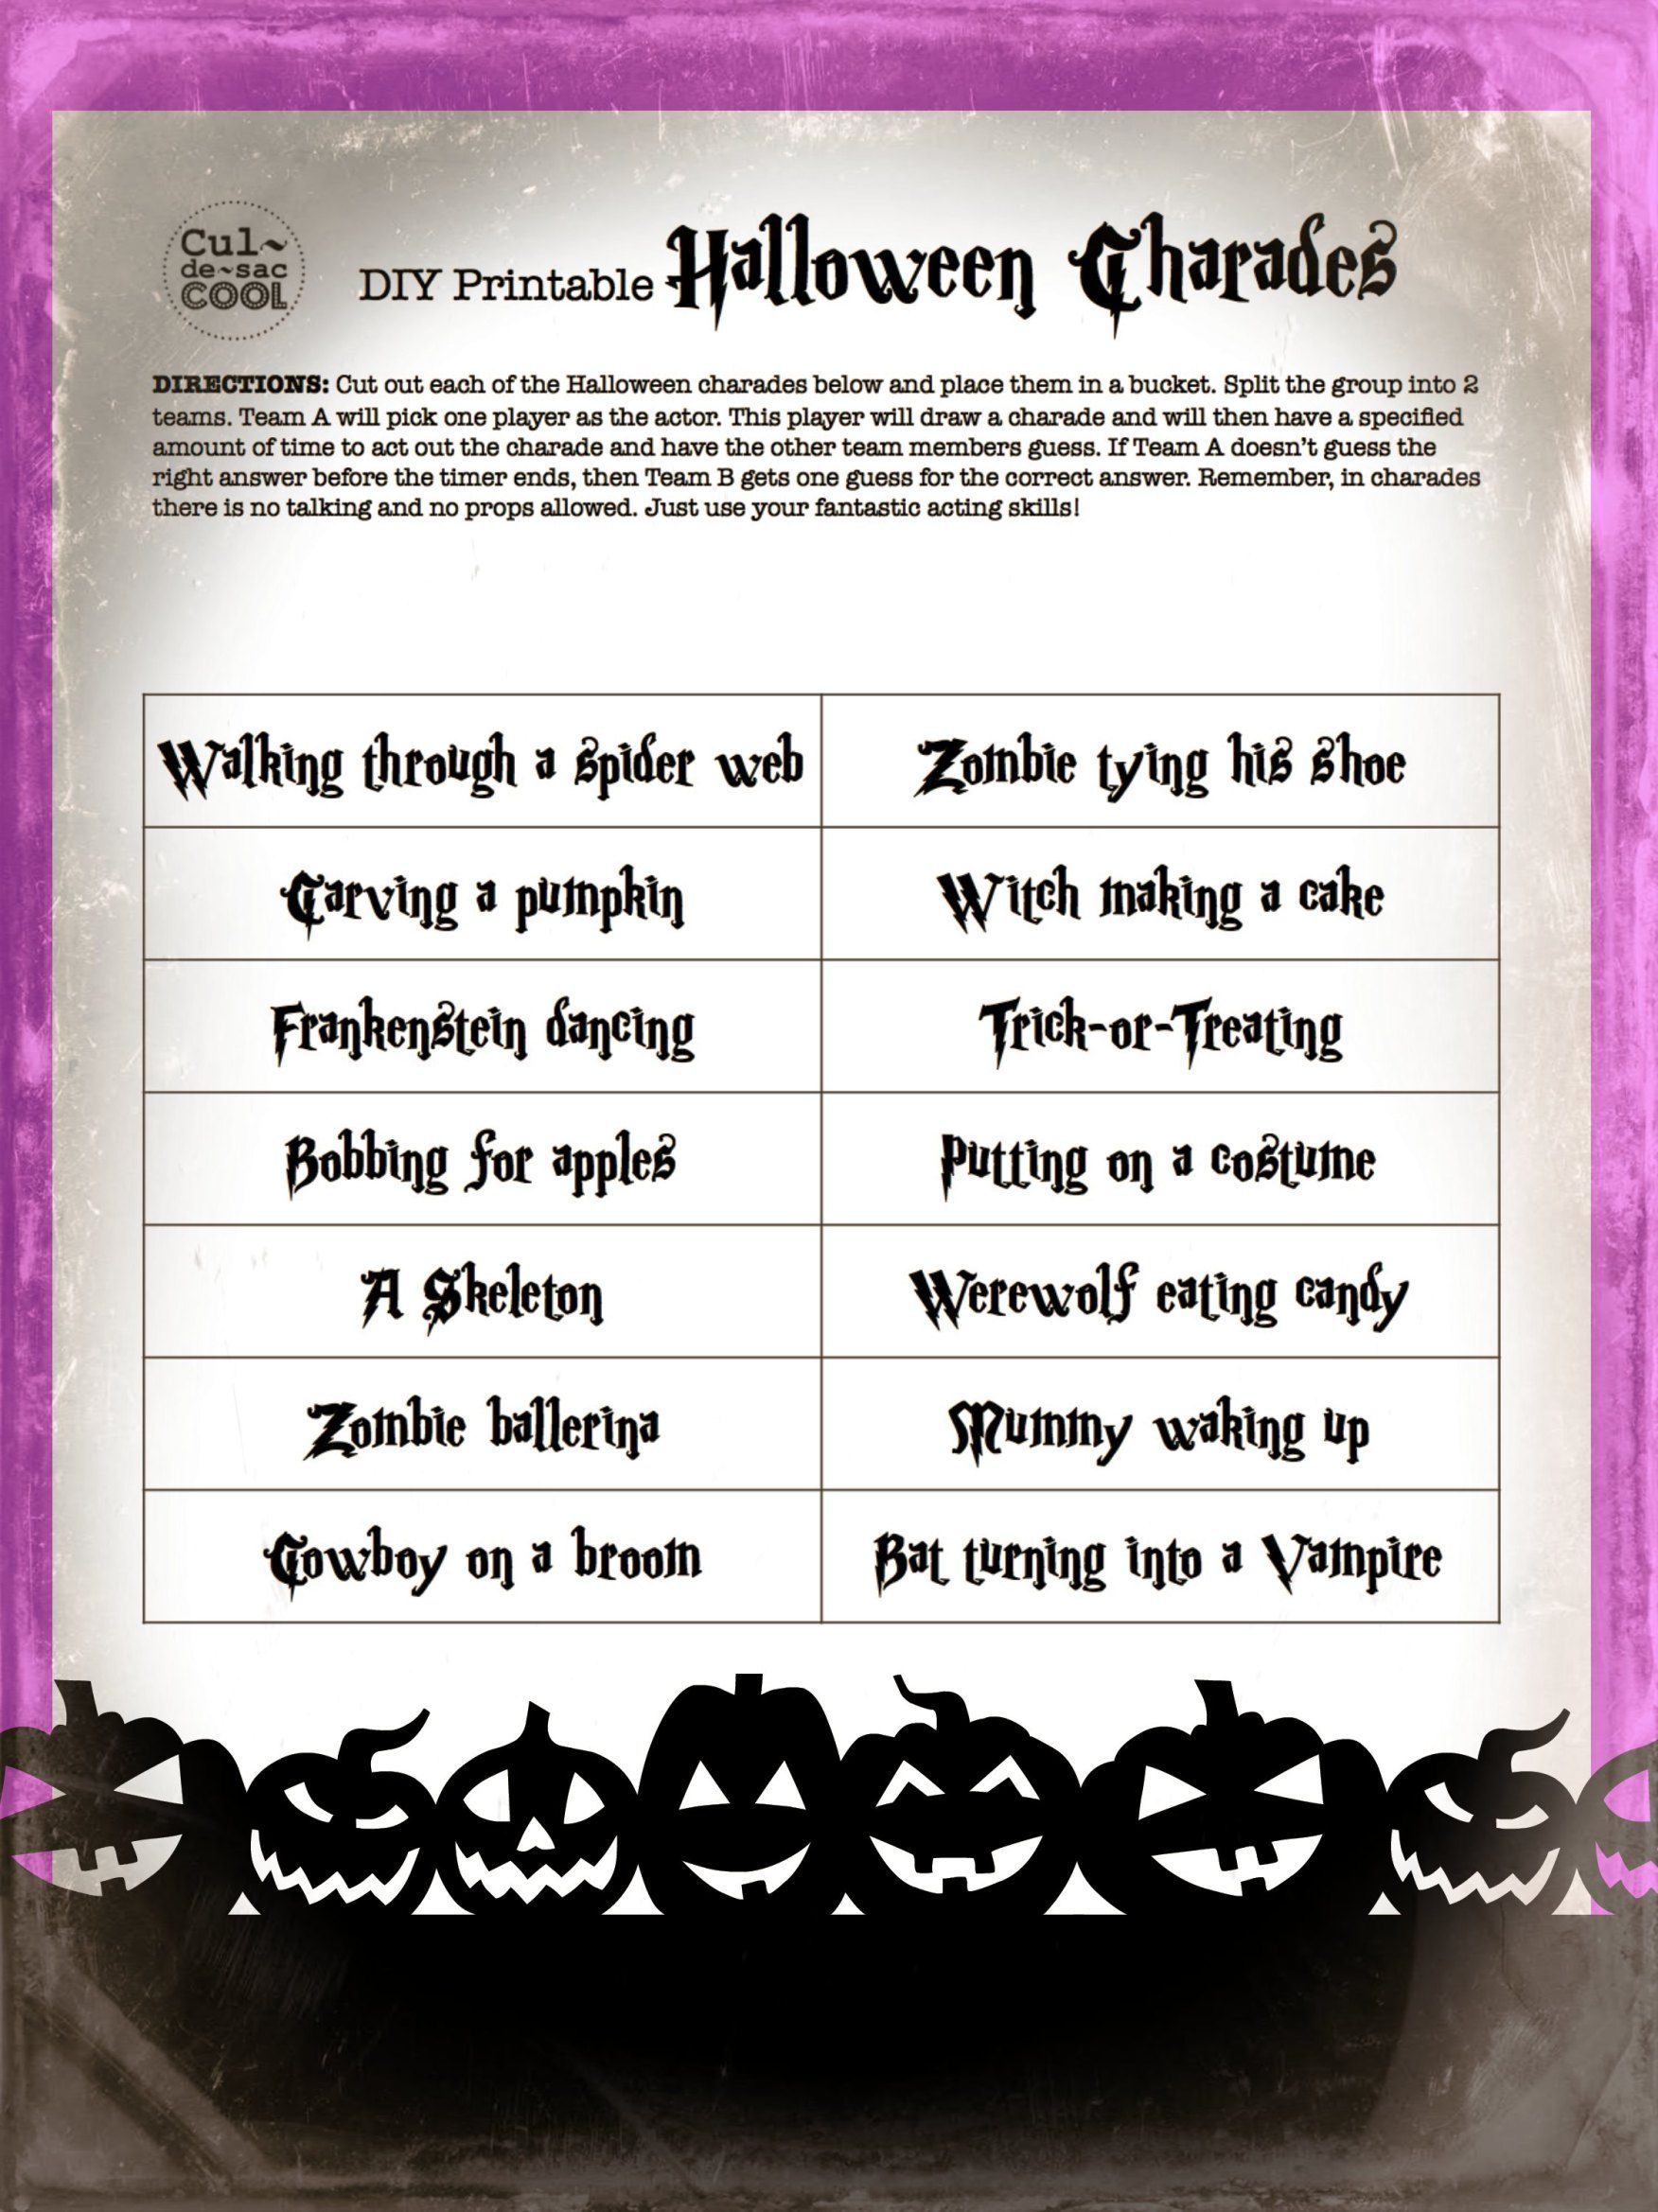 image regarding Halloween Charades Printable referred to as do it yourself-printable-halloween-charades-2 Halloween Clroom